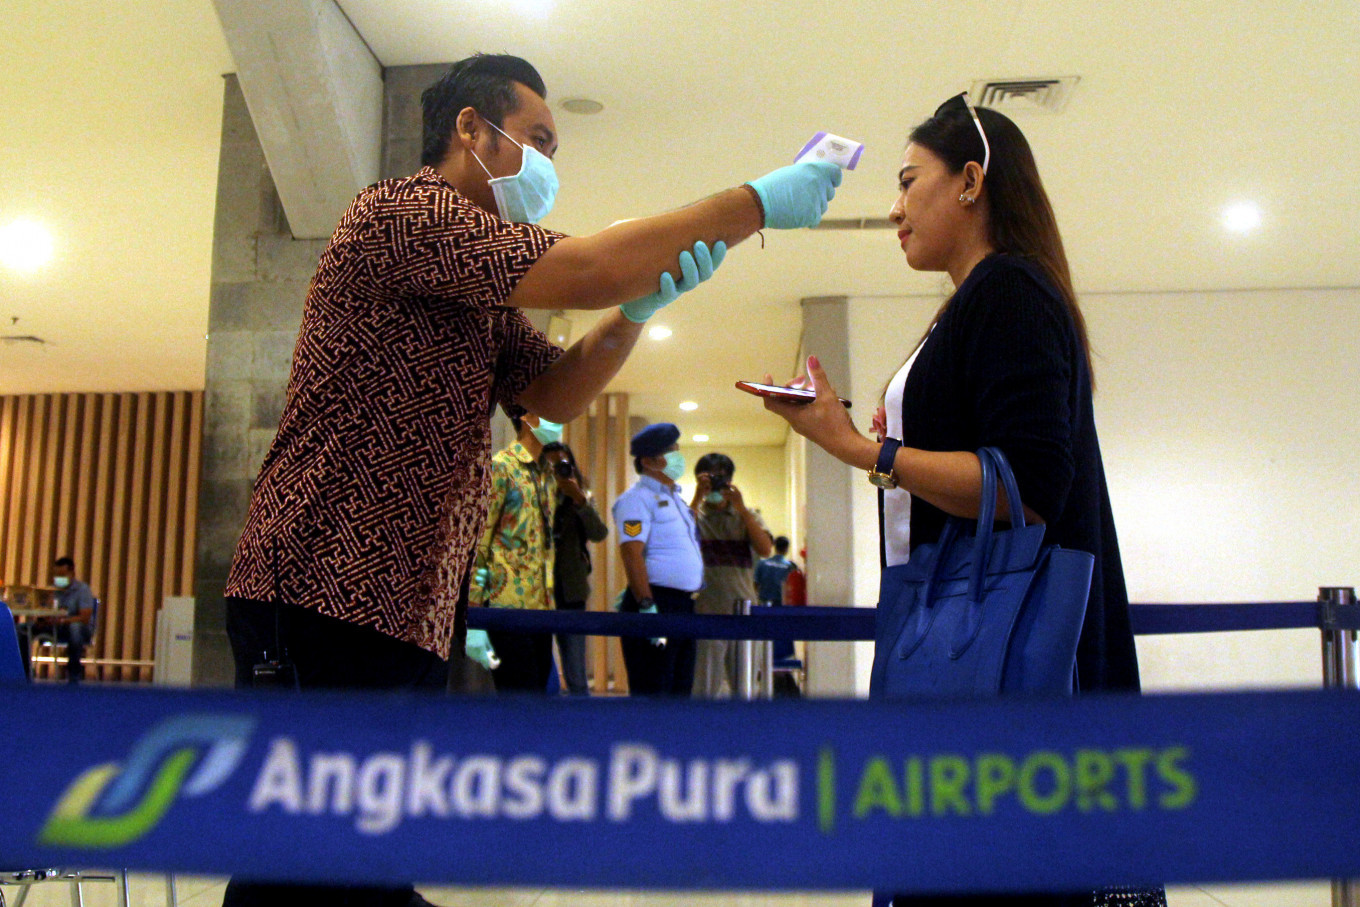 Tens of thousands of flights canceled in Indonesia because of COVID-19